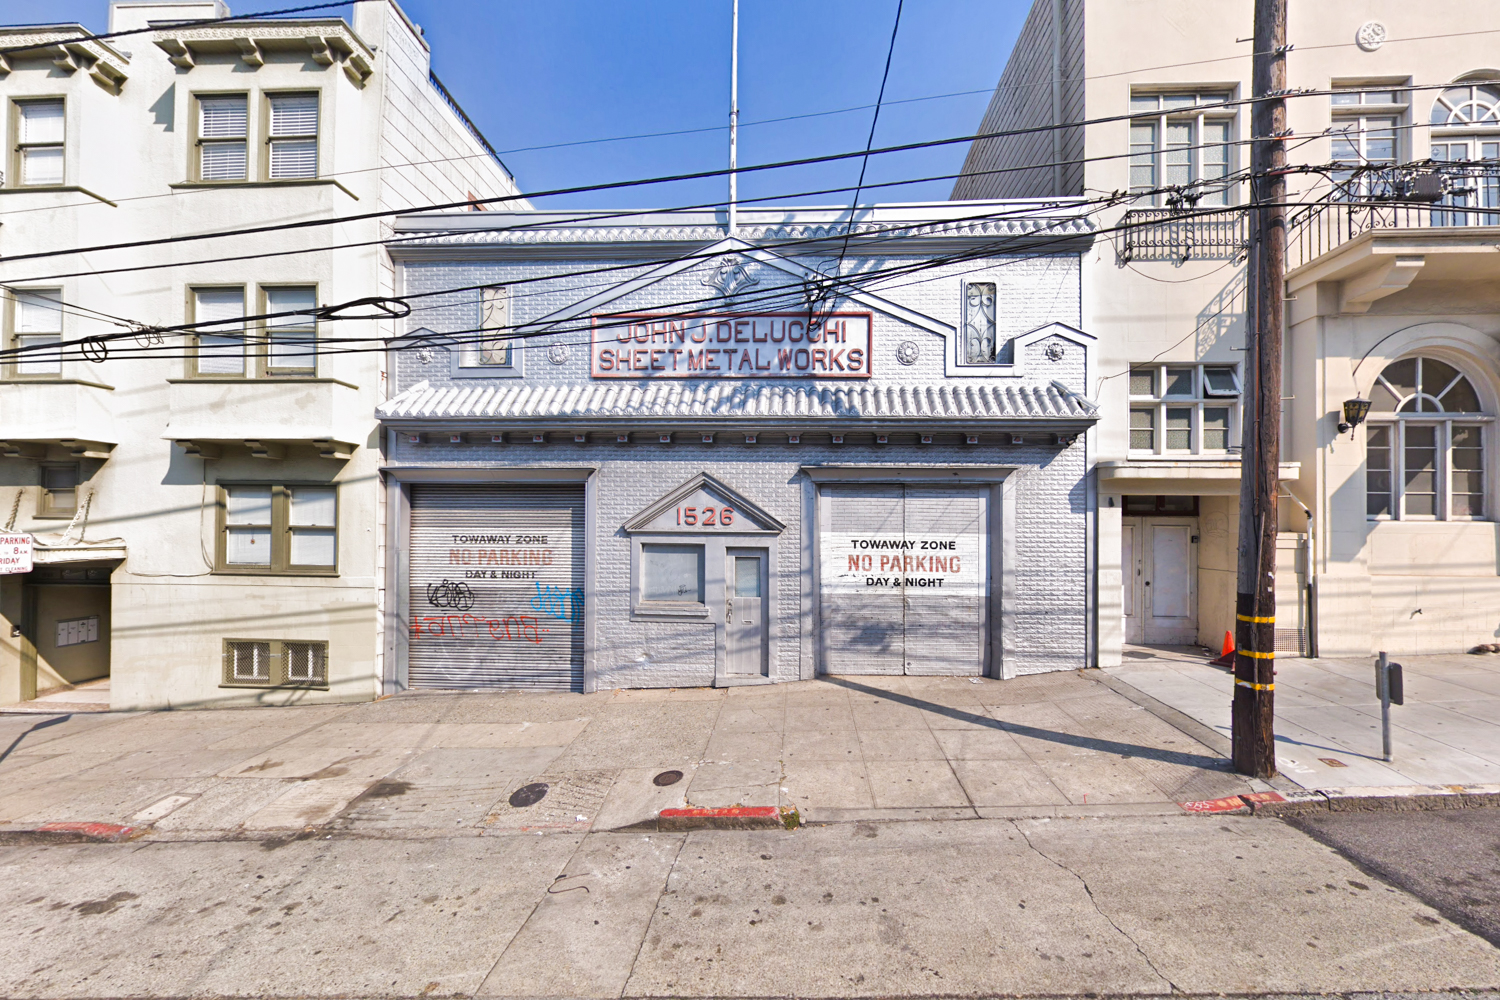 The Sheet Metal Works building at 1526 Powell Street, image via Google Street View